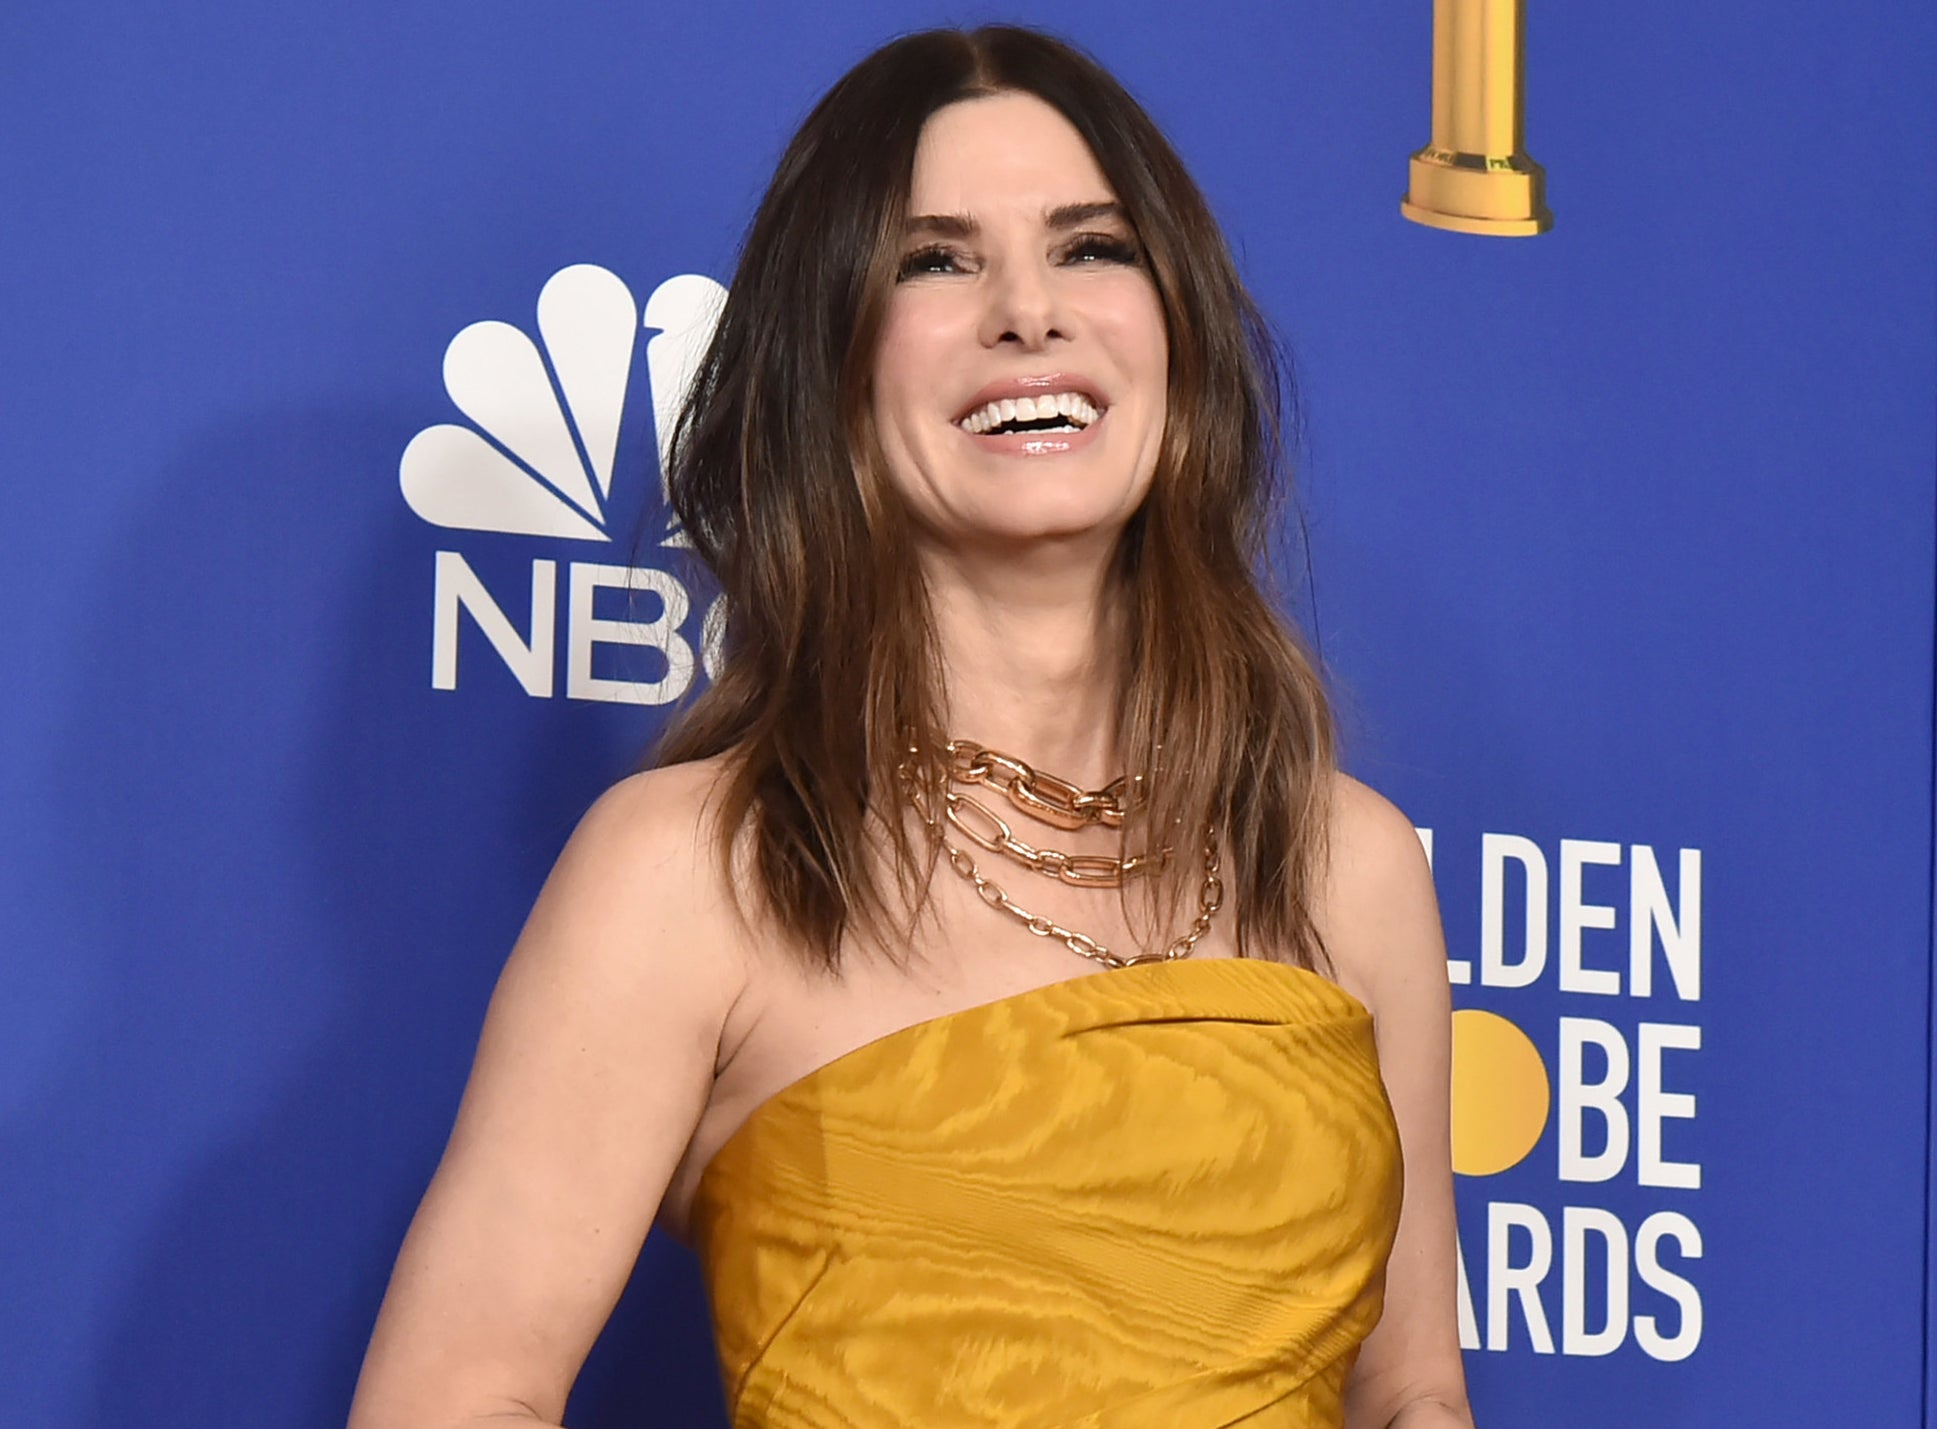 Sandra smiles while wearing a strapless golden colored dress